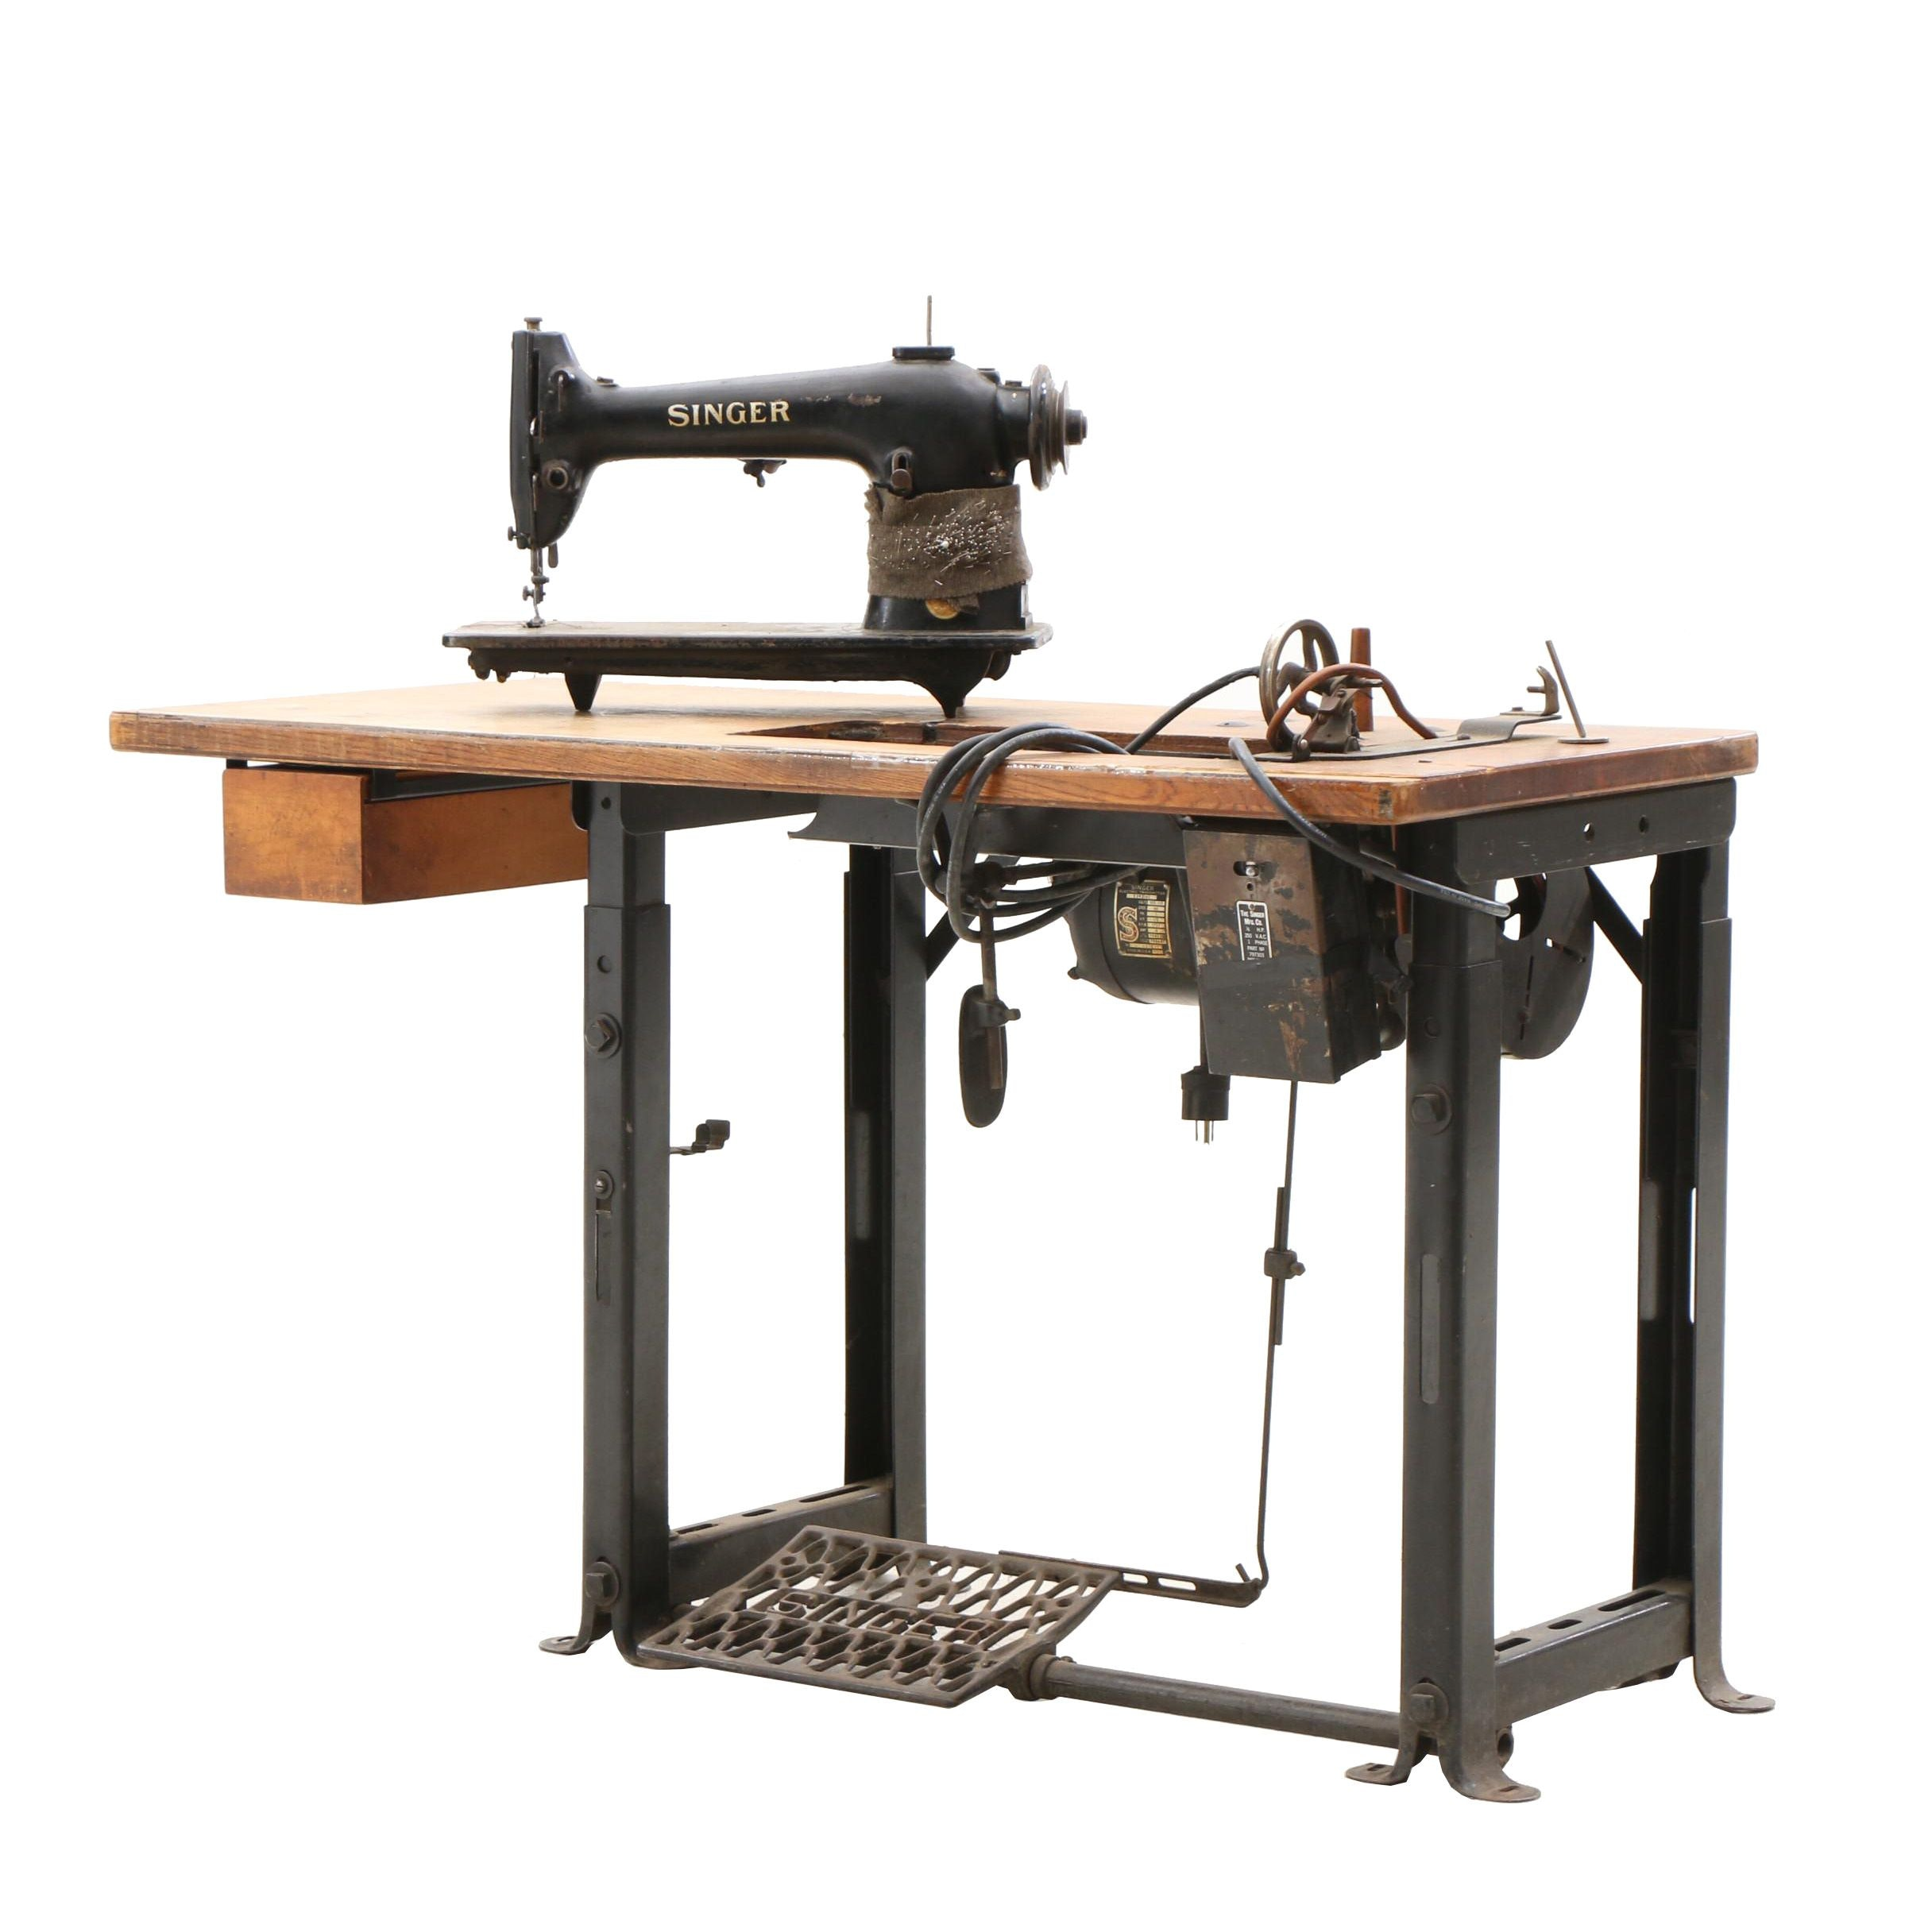 Vintage Industrial Singer Sewing Machine and Table